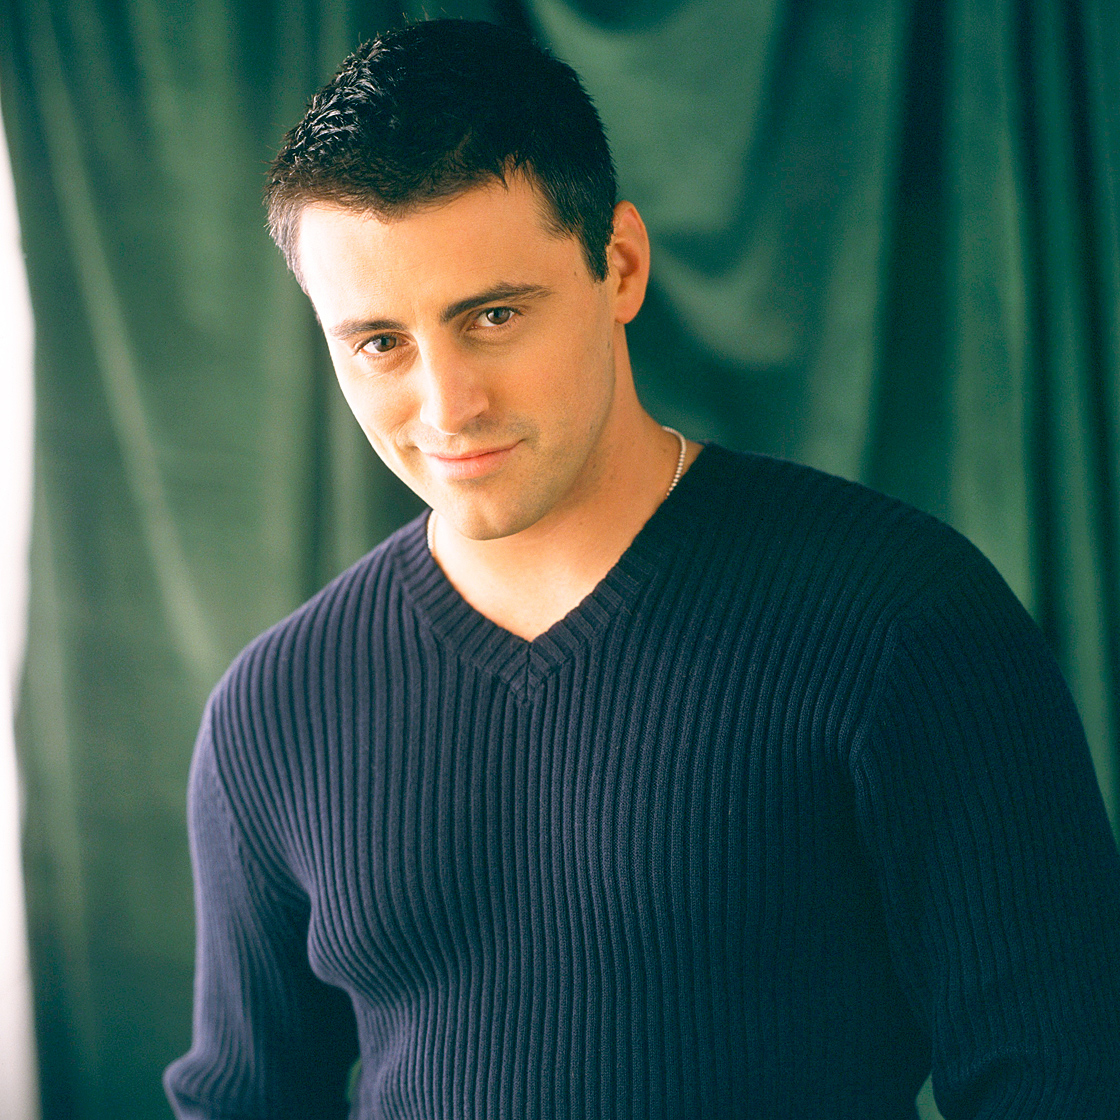 LeBlanc's portrayal of struggling actor Joey Tribbiani earned him three consecutive Best Actor in a Comedy Series Emmy nominations — and a spin-off sitcom, Joey , which aired two seasons on NBC before being canceled in 2006.